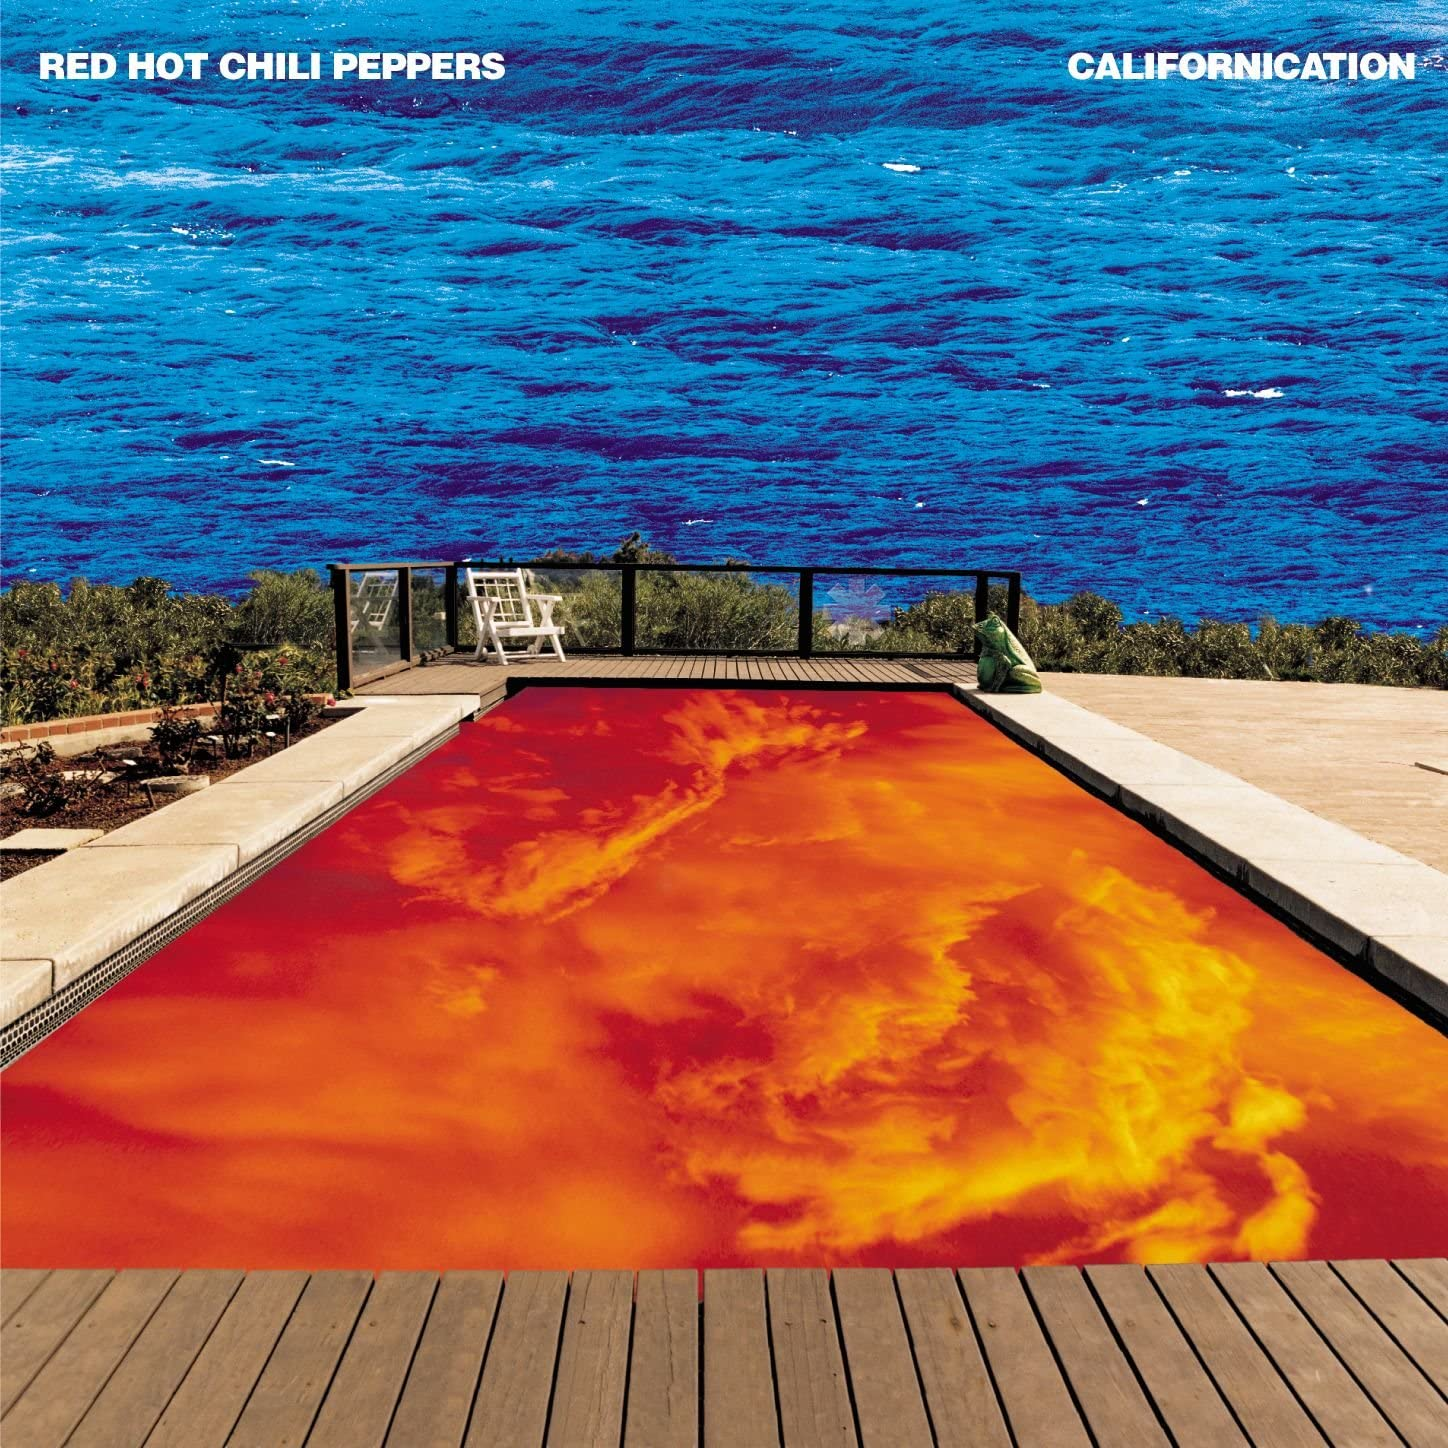 """24.""""Parallel Universe"""" - 'Californiation' (1999) Flea's bass playing was classic disco filtered through Joy Division (who was a big influence on the band's next album). Even though this song wasn't a huge hit, they almost always play it live, and for good reason."""